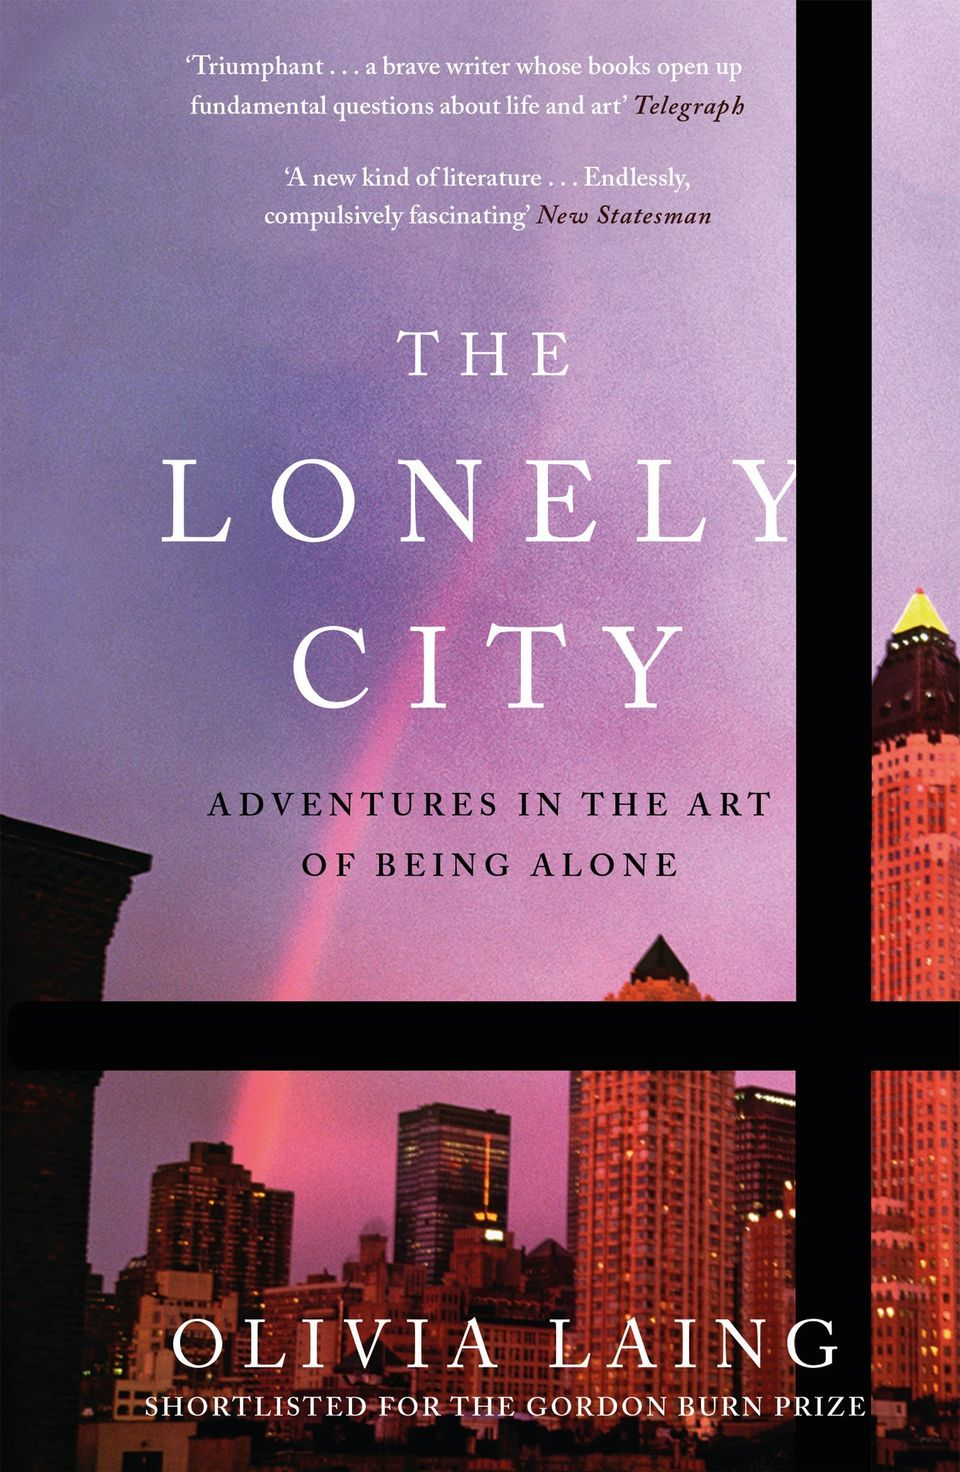 In her book 'The Lonely City', writer Olivia Laing says that 'so much of the pain of loneliness is to...